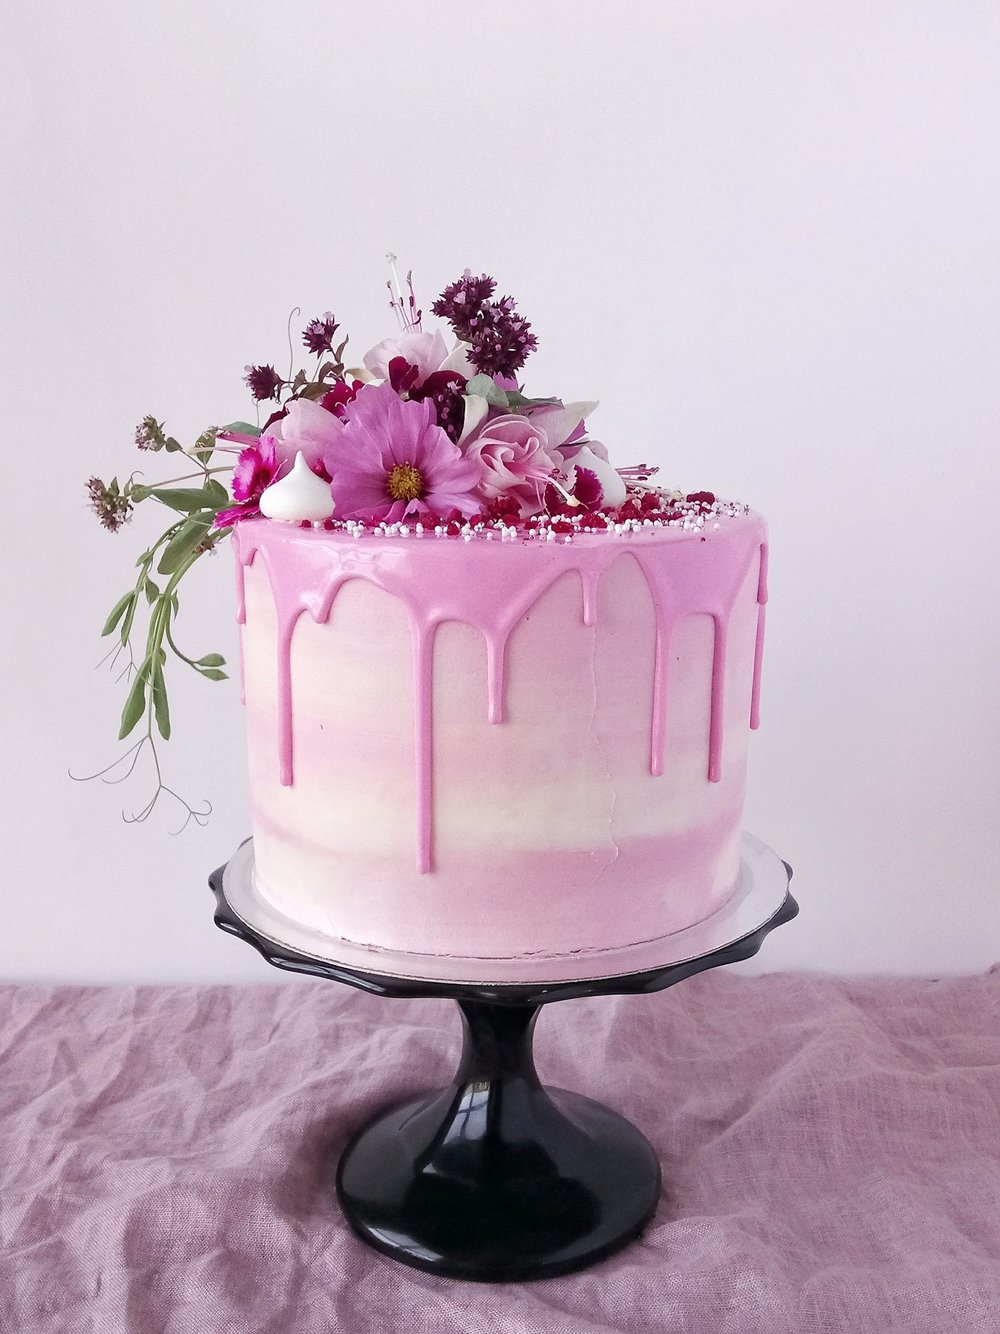 Rebecca Jane Sugar Art - Pink watercolour floral drip cake